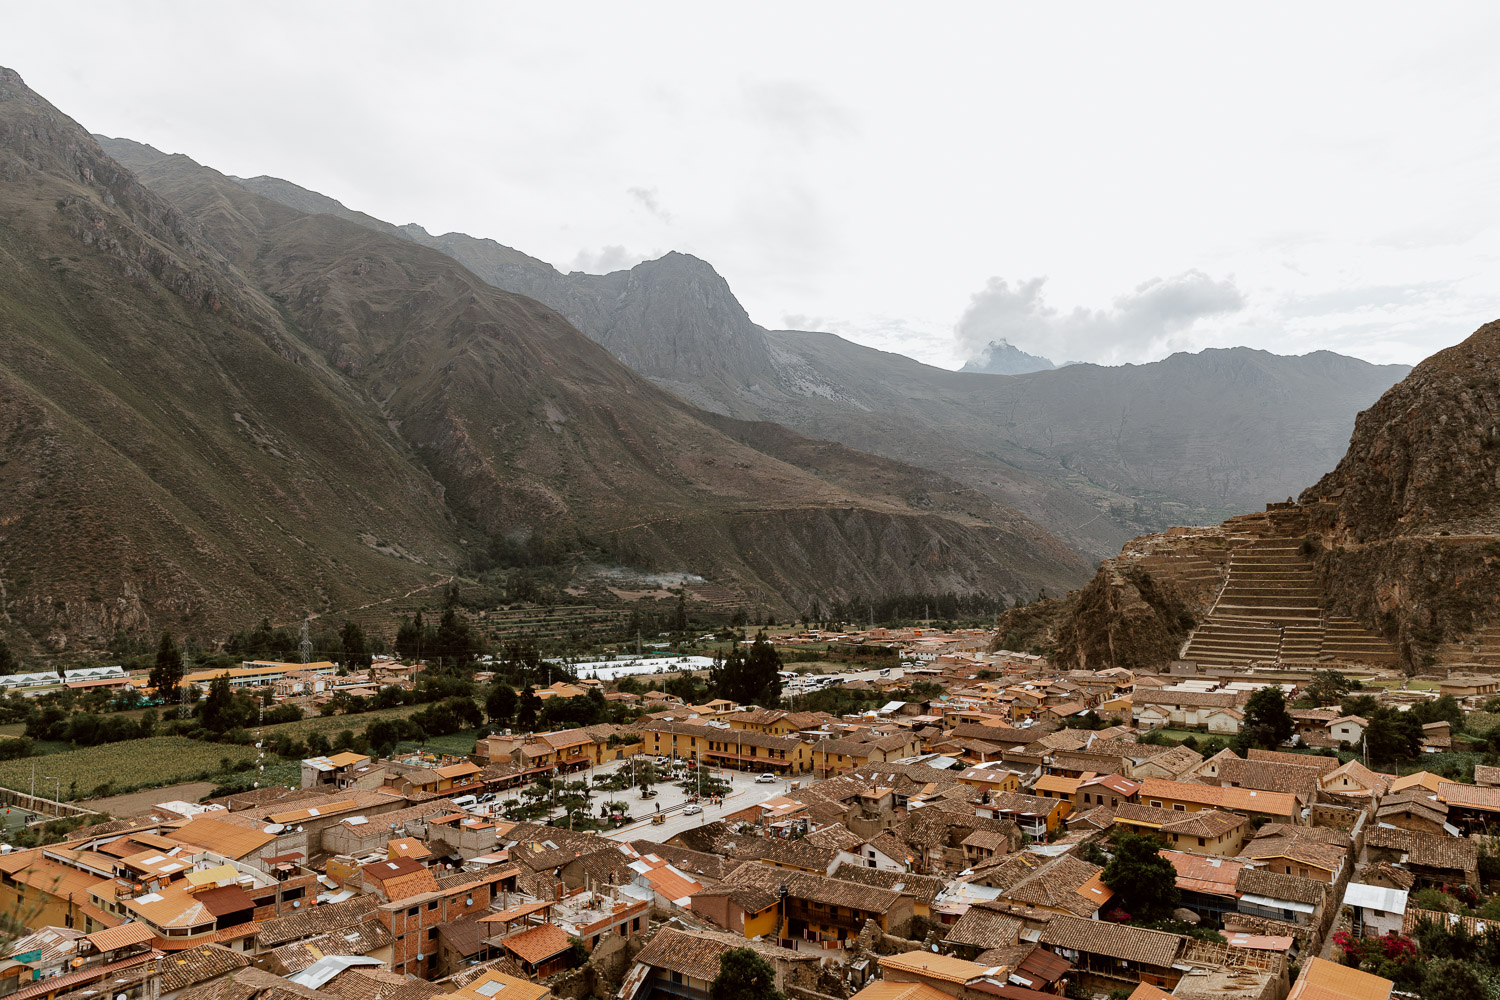 Things to do in Ollantaytambo - View from Depositos de Pinkuylluna